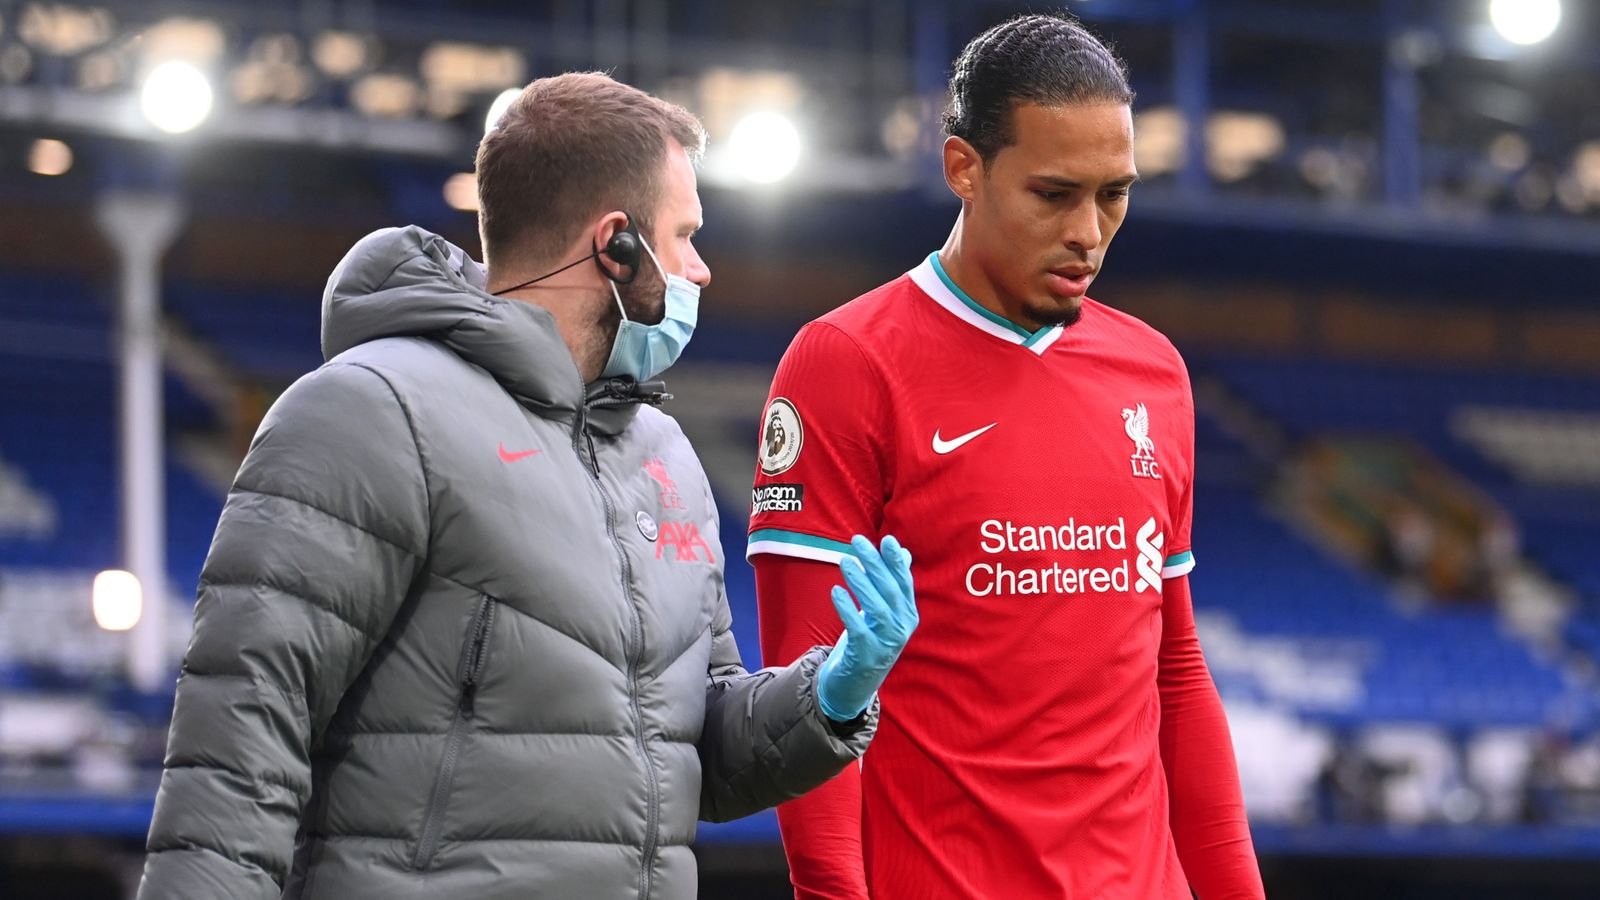 Virgil van Dijk undergoes successful surgery on ACL injury